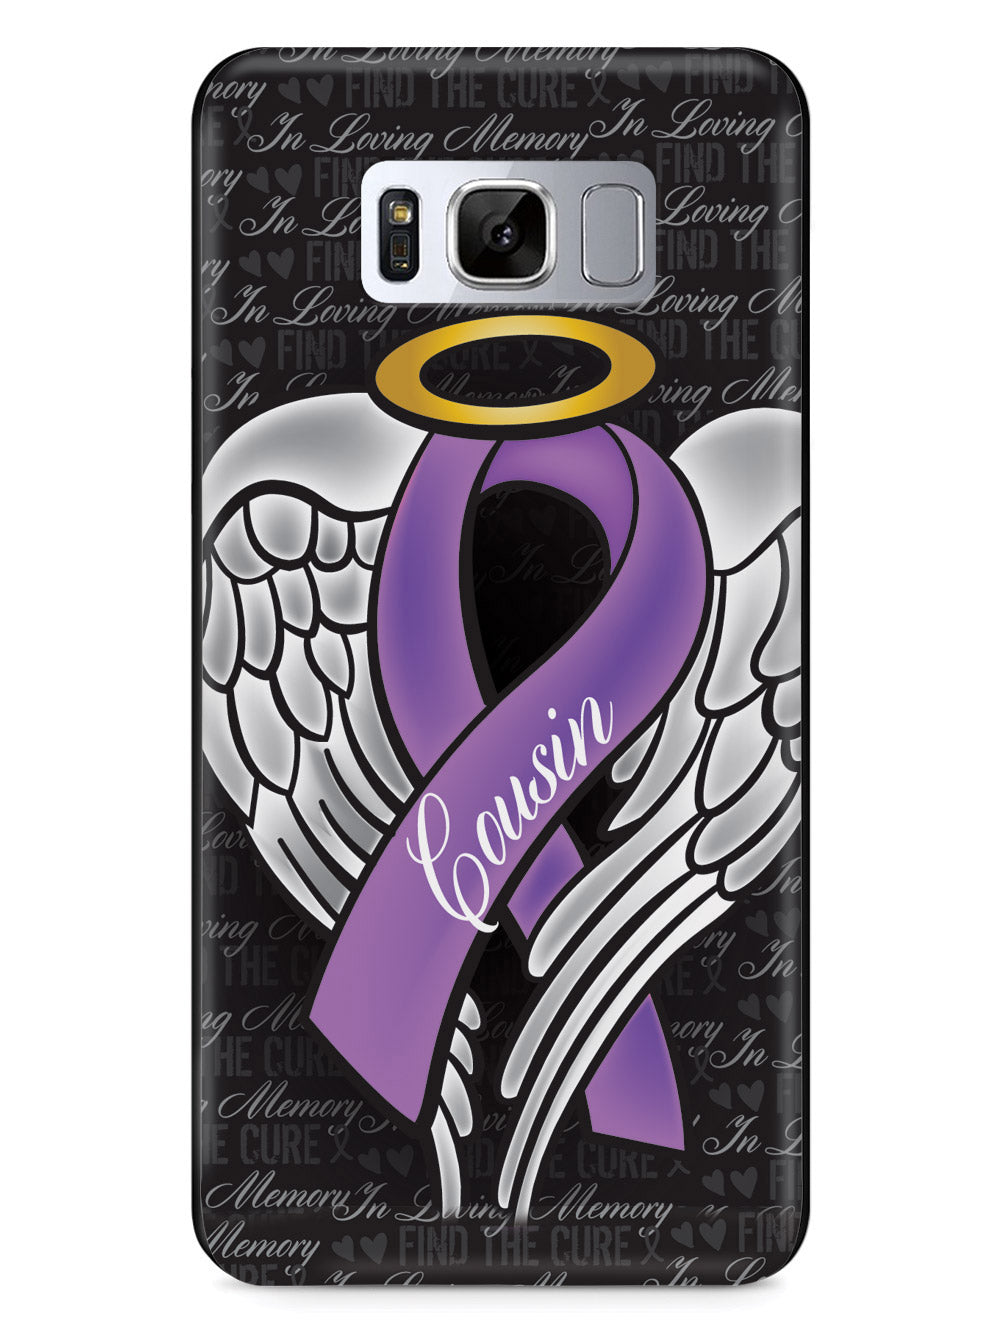 In Loving Memory of My Cousin - Purple Ribbon Case